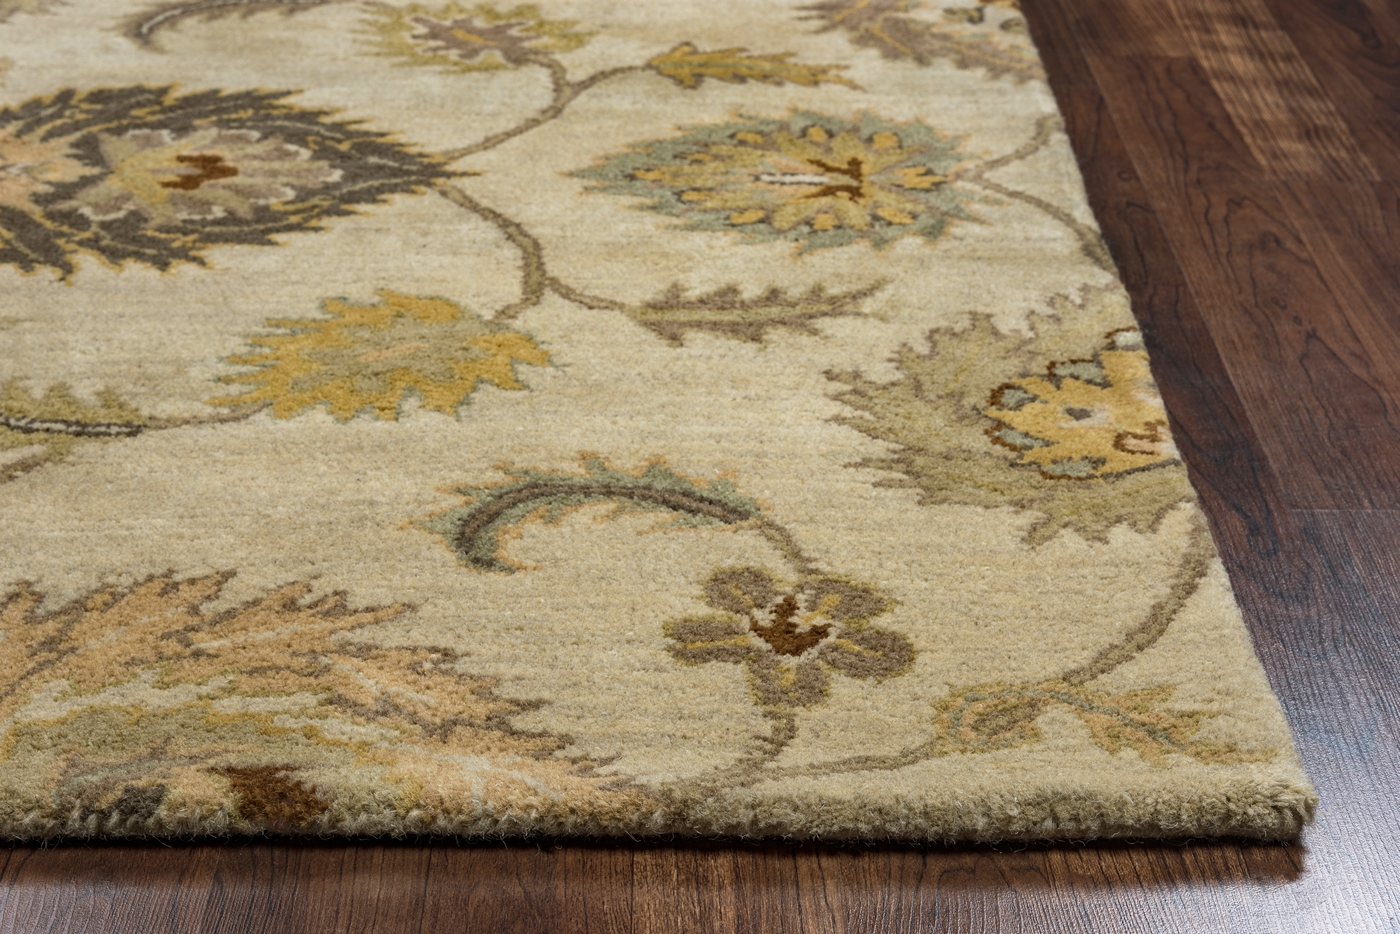 Valintino Ornate Mums Wool Area Rug In Tan Sage Brown Gray